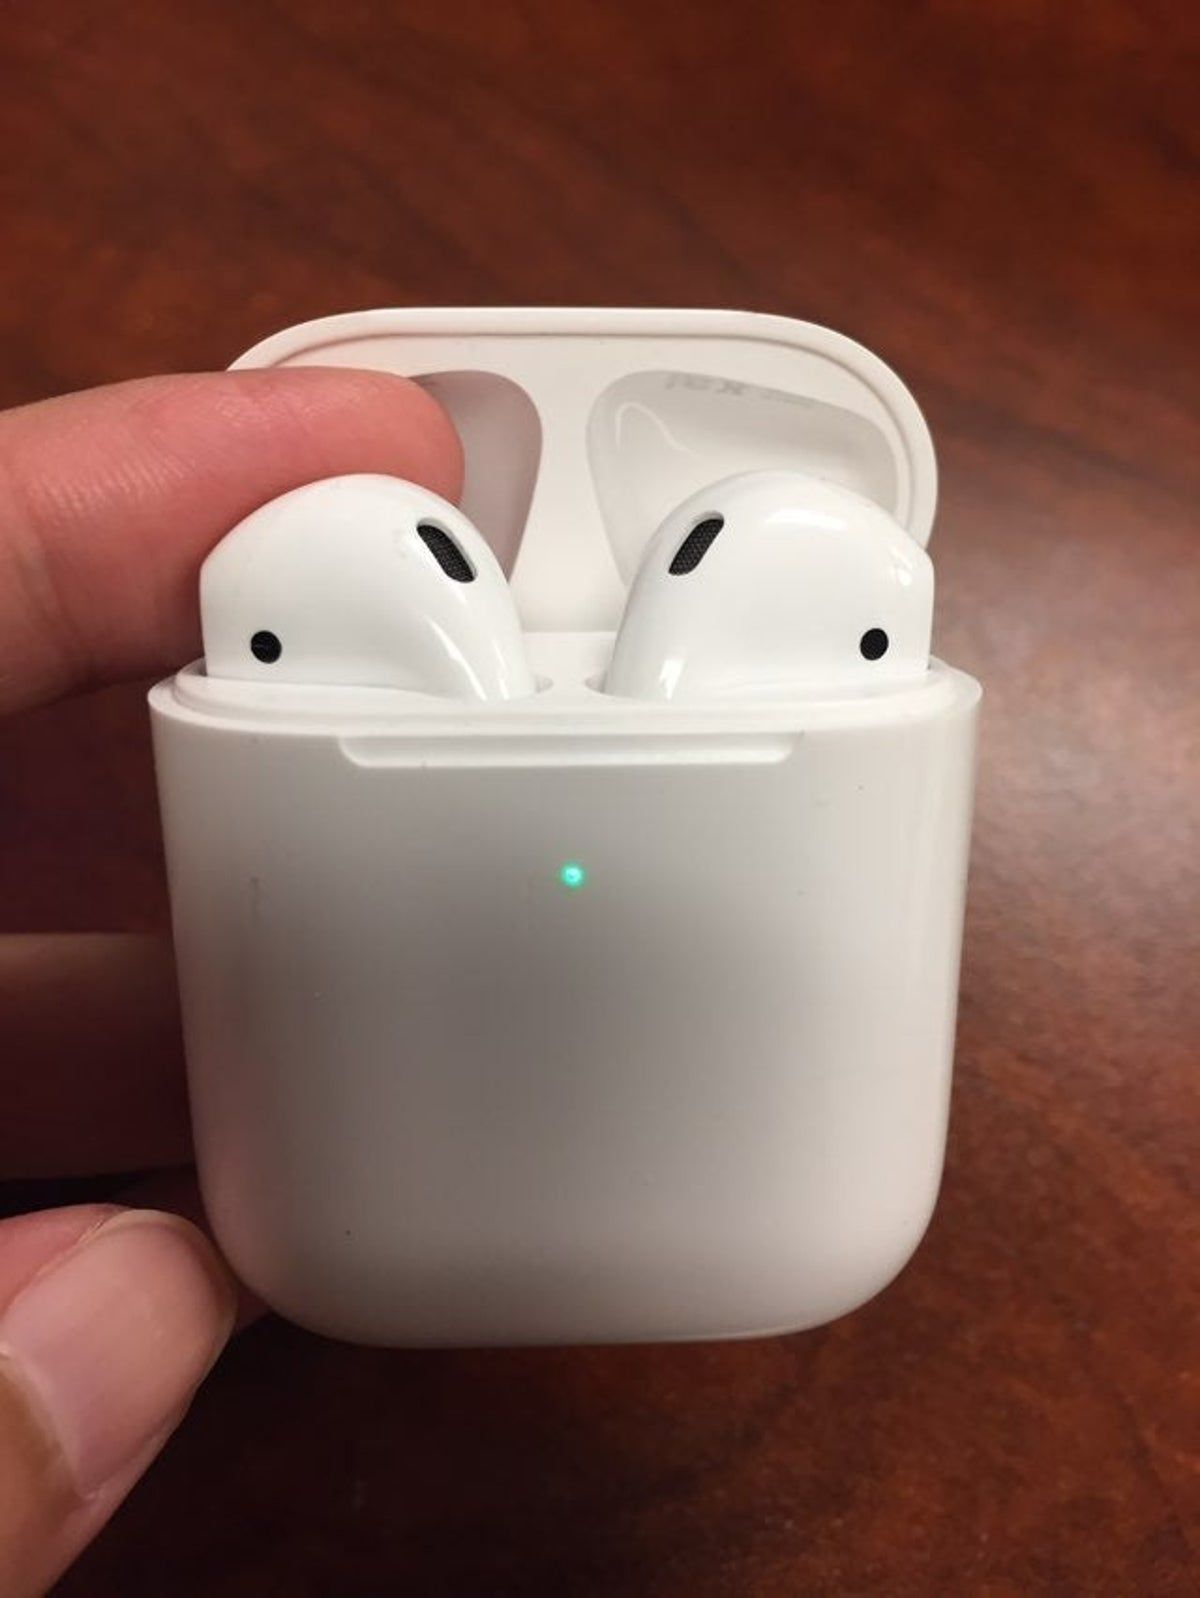 Airpods 2nd Generation Generic Android In 2020 With Images